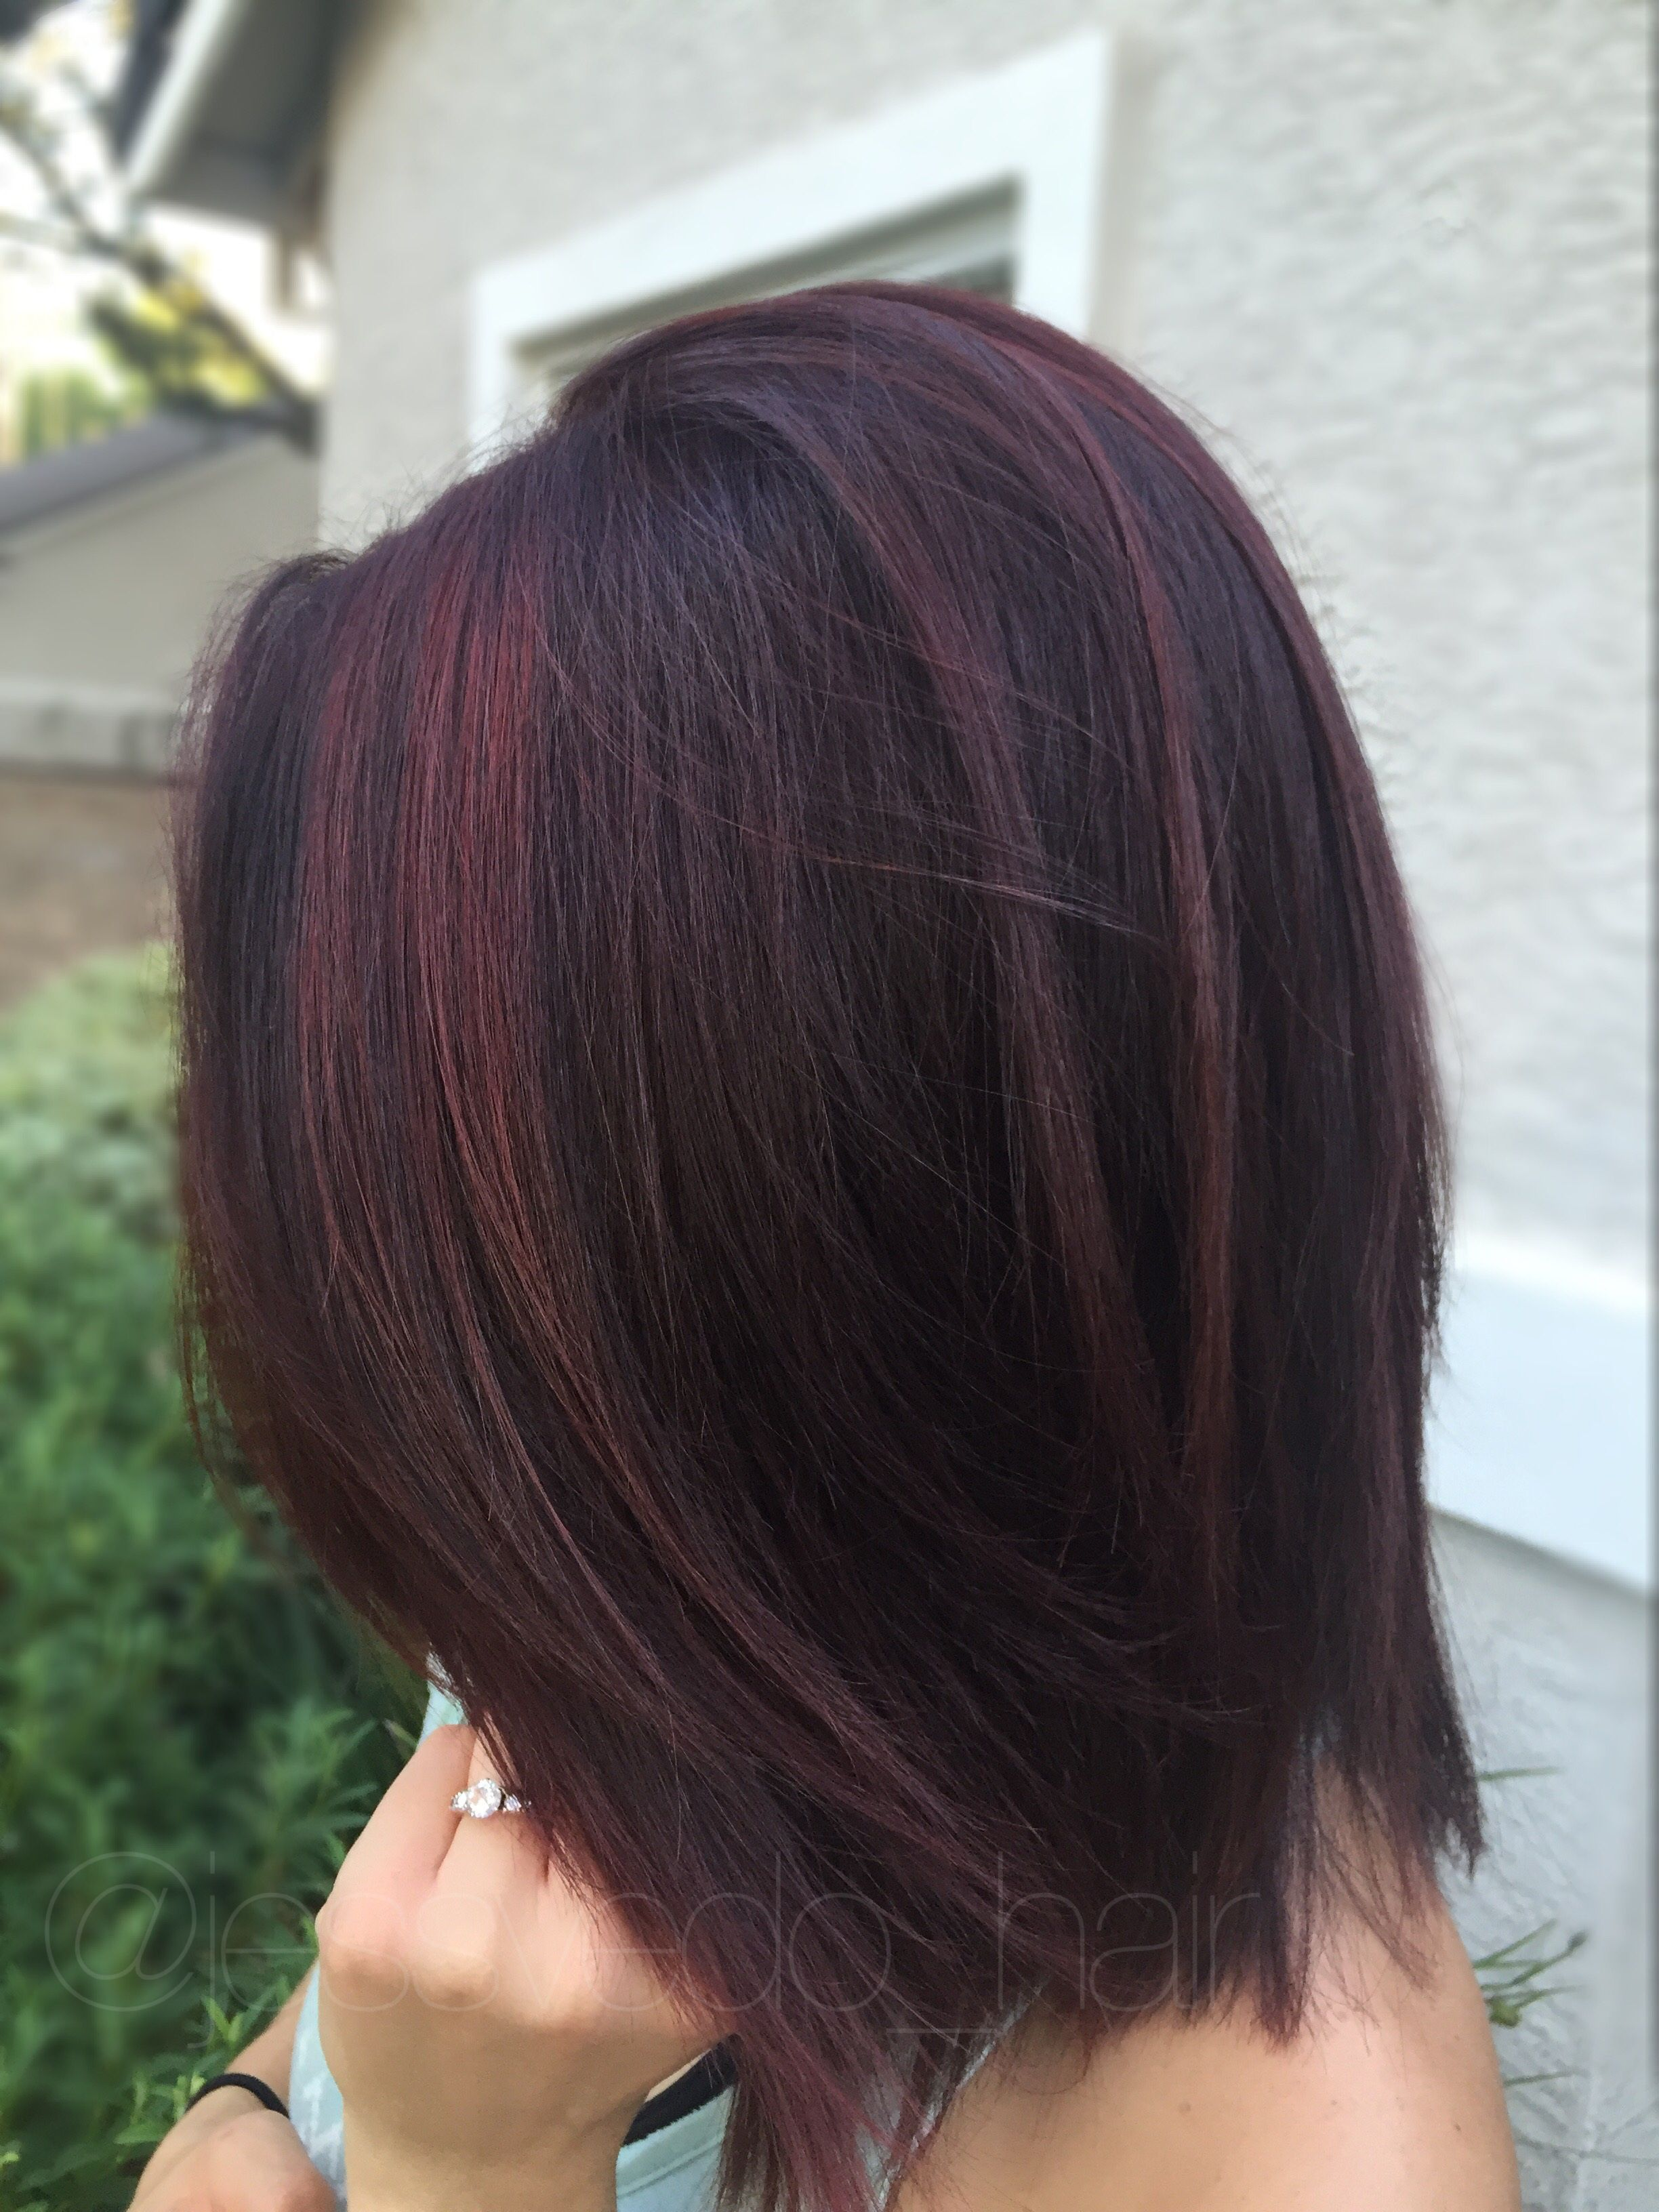 Red Violet Hair Color With Some Red Balayage Highlights On Short